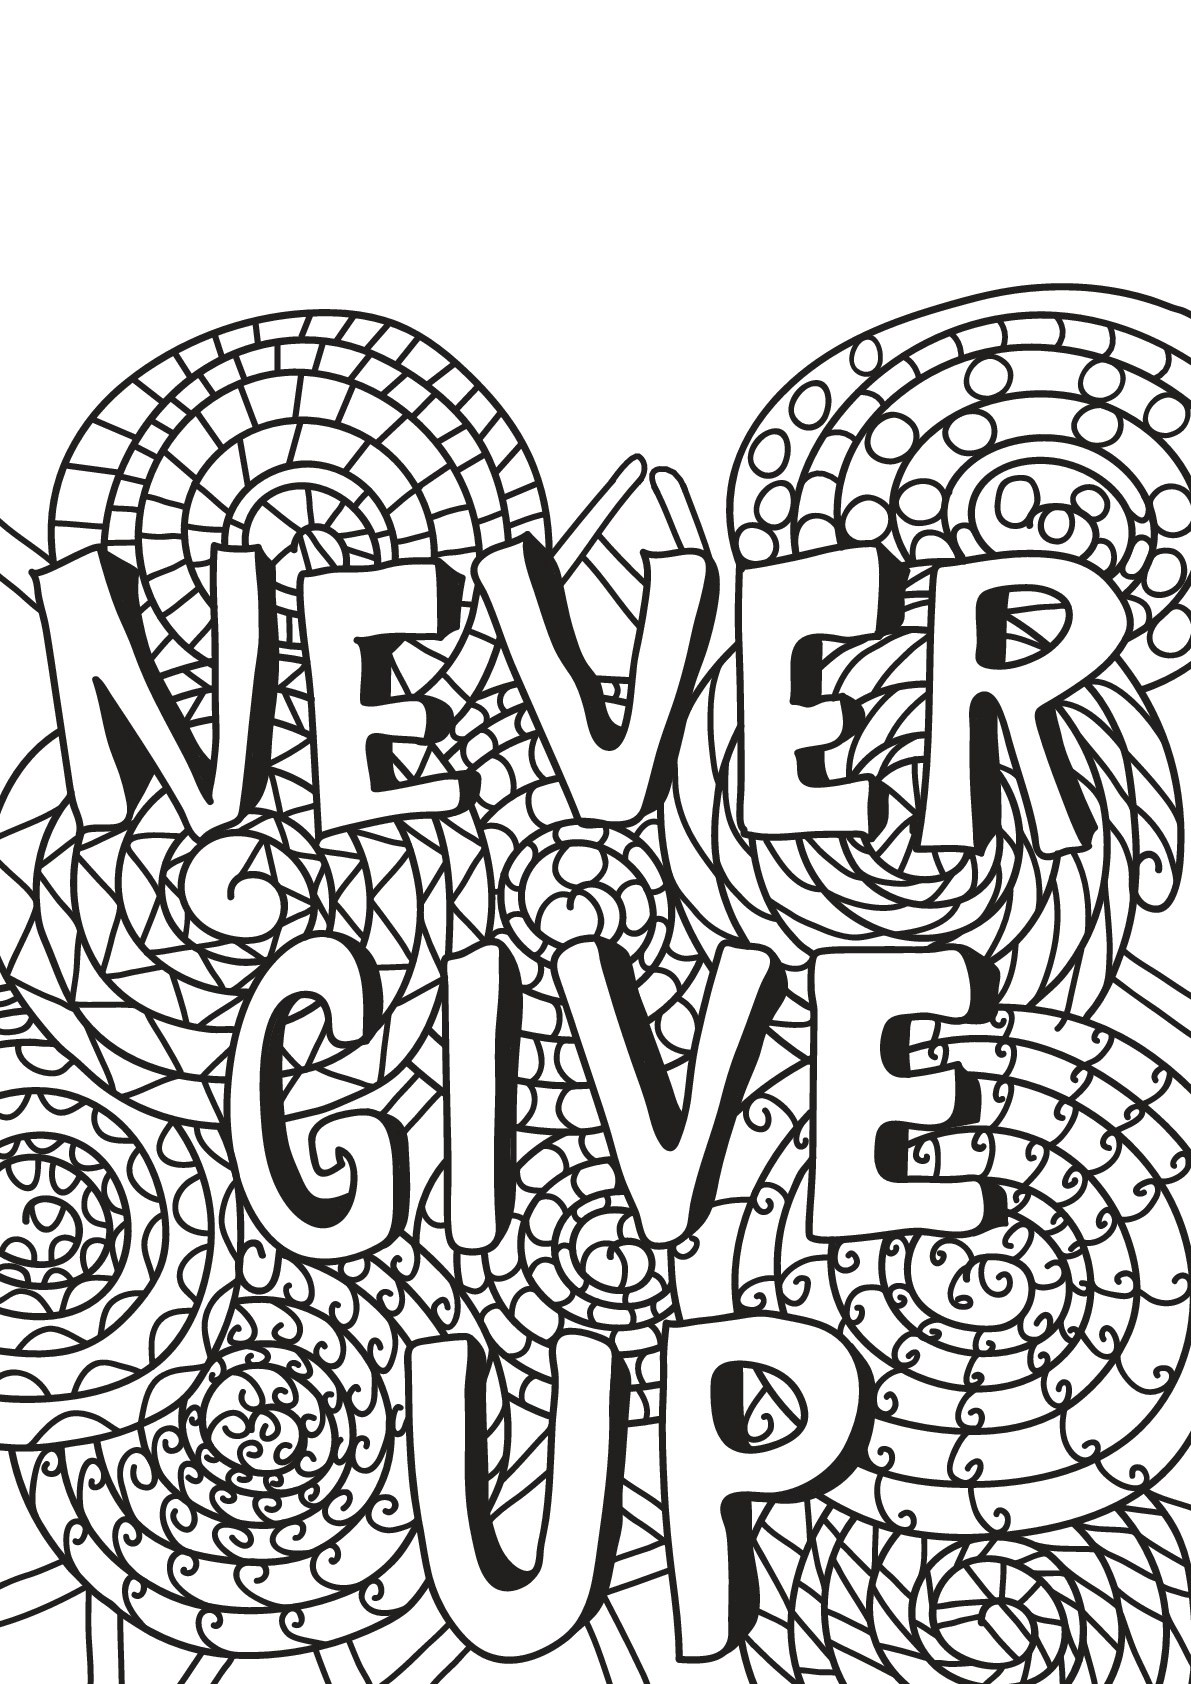 Free book quote 14 - Quotes Adult Coloring Pages | printable coloring pages for adults quotes